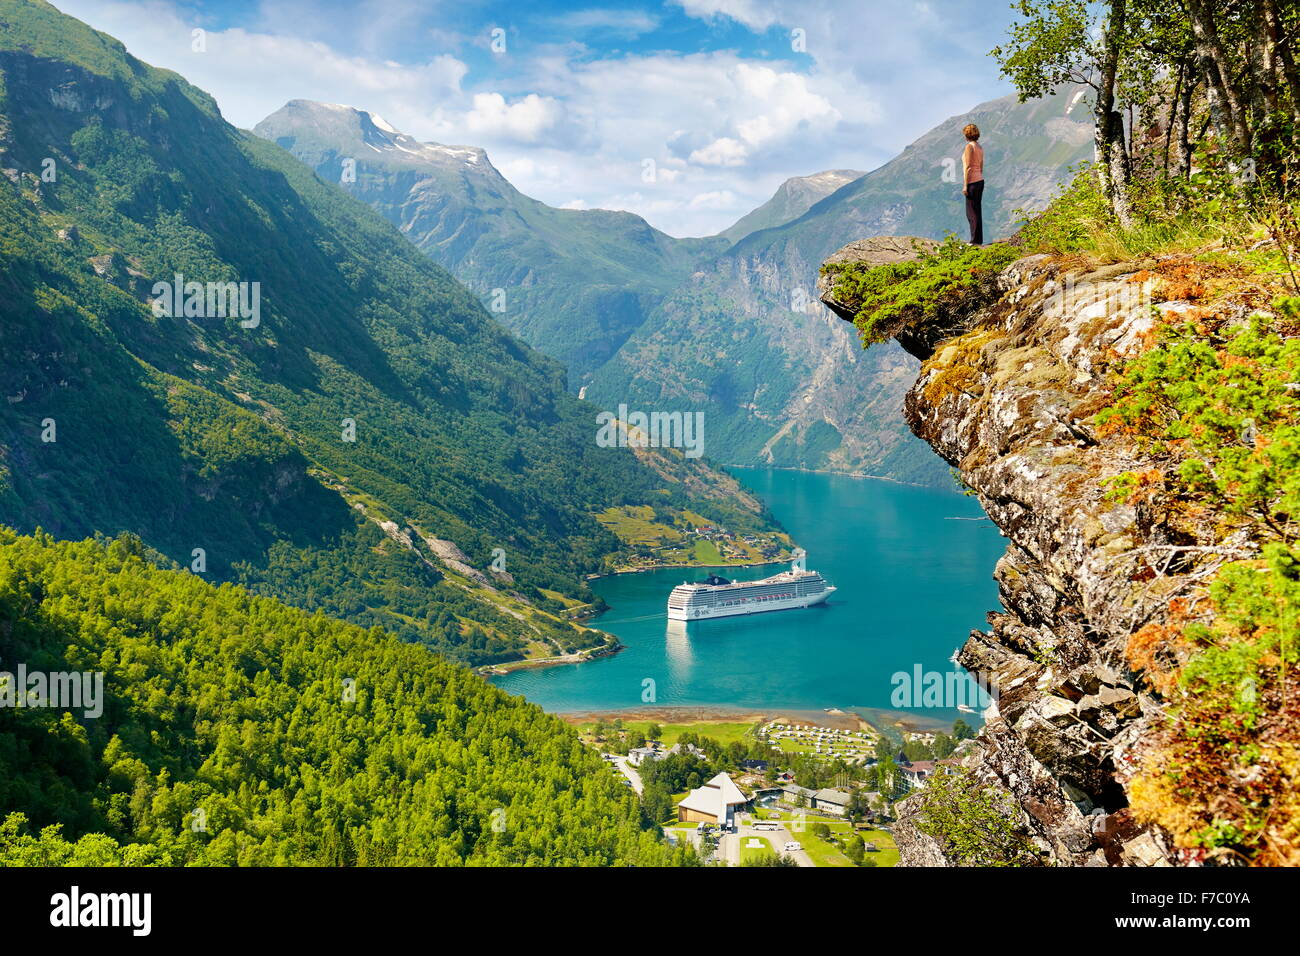 Tourist standing on the rock cliff, cruise ship in Geiranger Fjord in the background, Norway - Stock Image